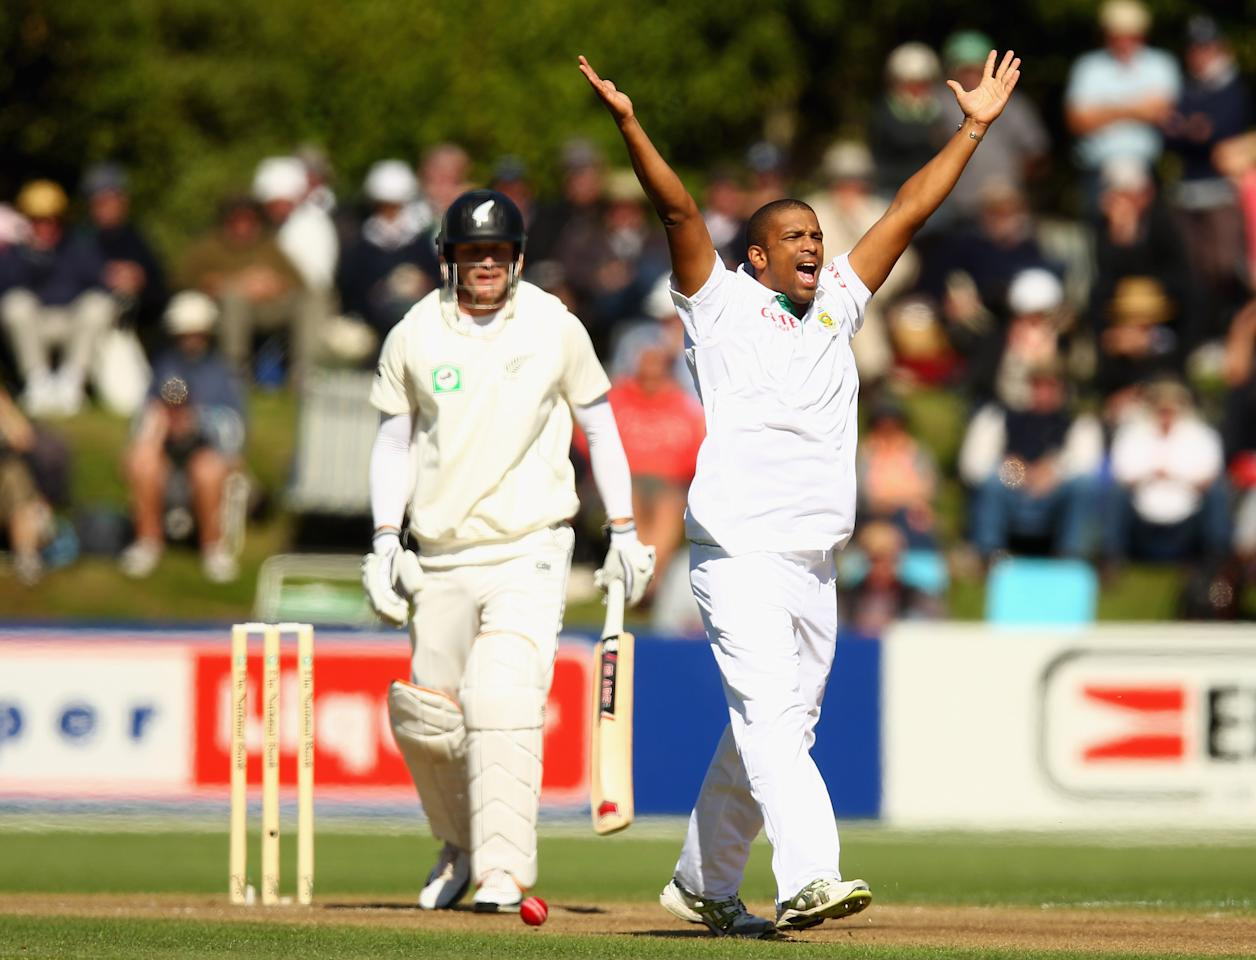 Vernon Philander of South Africa makes an appeal for the wicket of Rob Nicol of New Zealand during day two of the First Test match between New Zealand and South Africa at the   University Oval on March 8, 2012 in Dunedin, New Zealand.